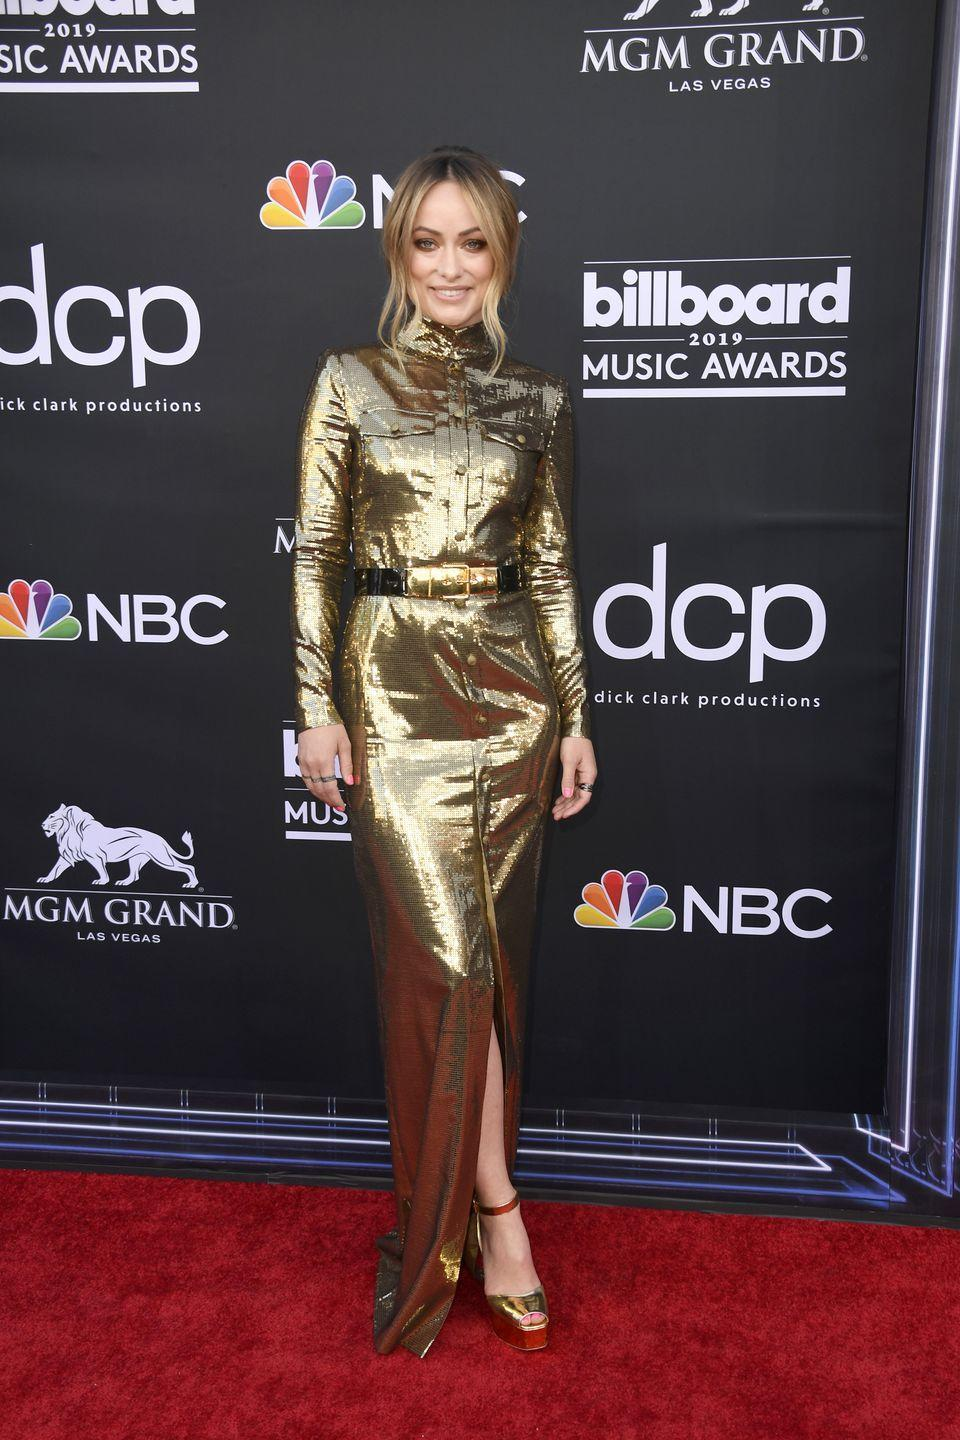 <p>Not one to be outshone by the bright lights of Las Vegas, the actress/director wore a floor-length gold dress with a knee-high slit, teamed with a black belt and gold detailing. </p>